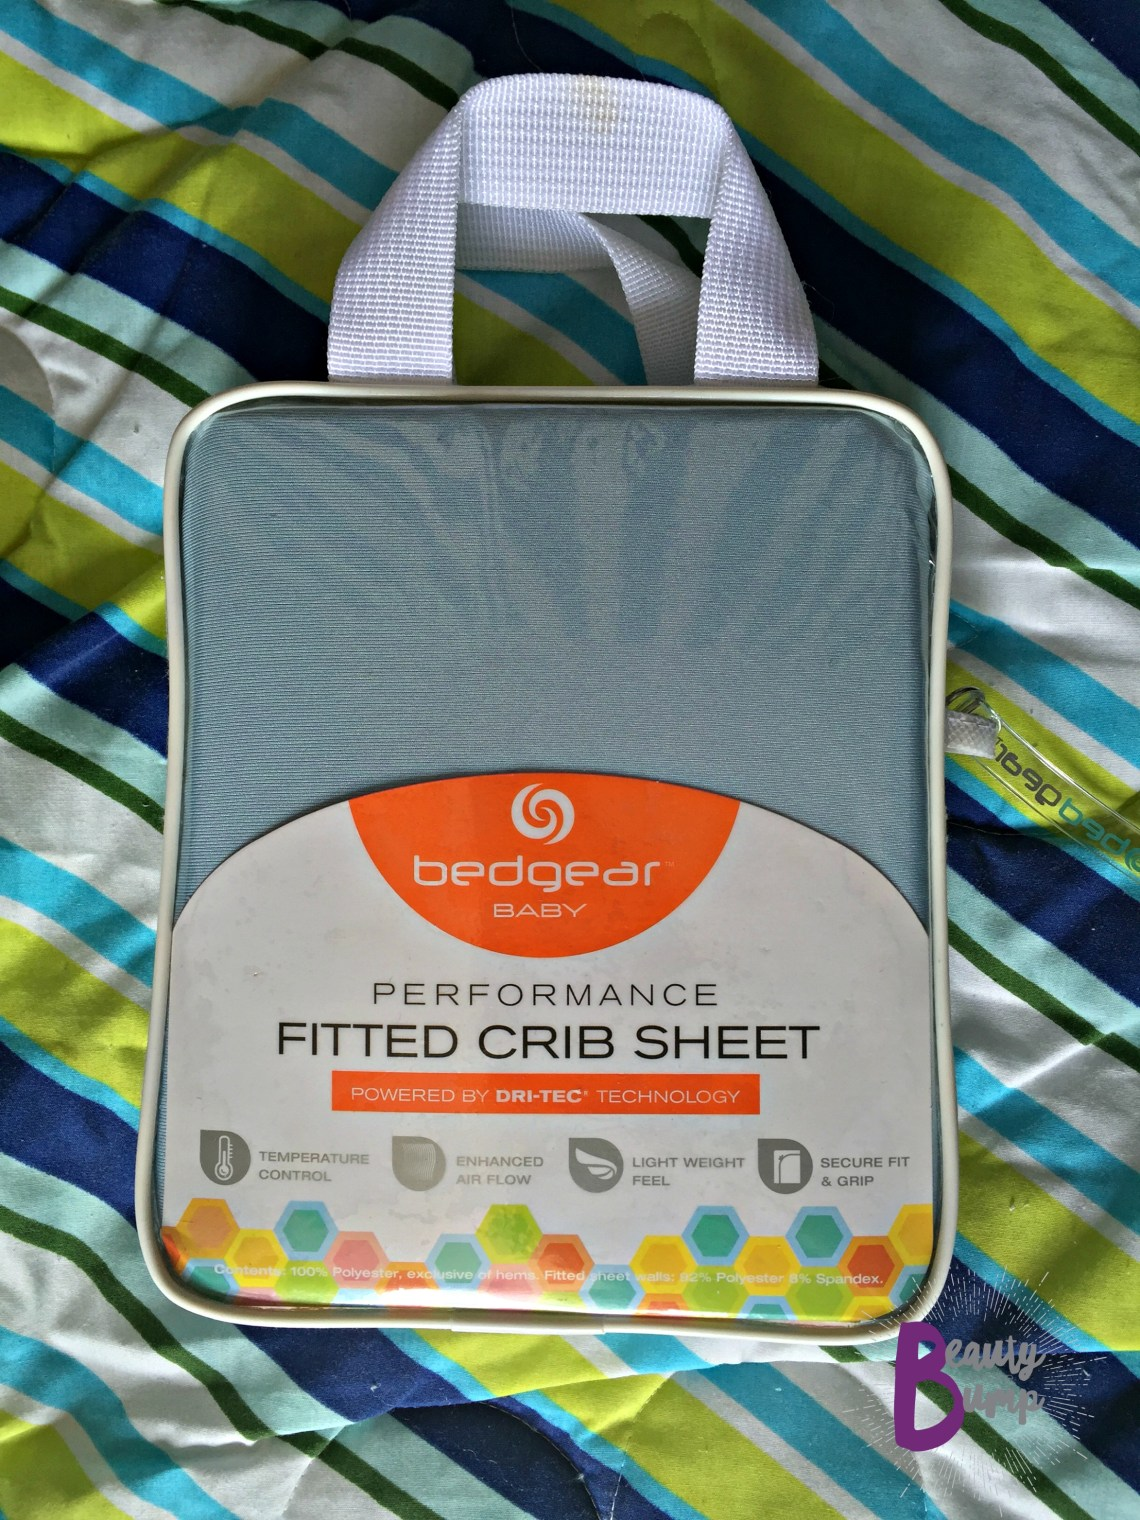 Bedgear Baby Performance Fitted Crib Sheet powered by DRI-TEC technology packaging